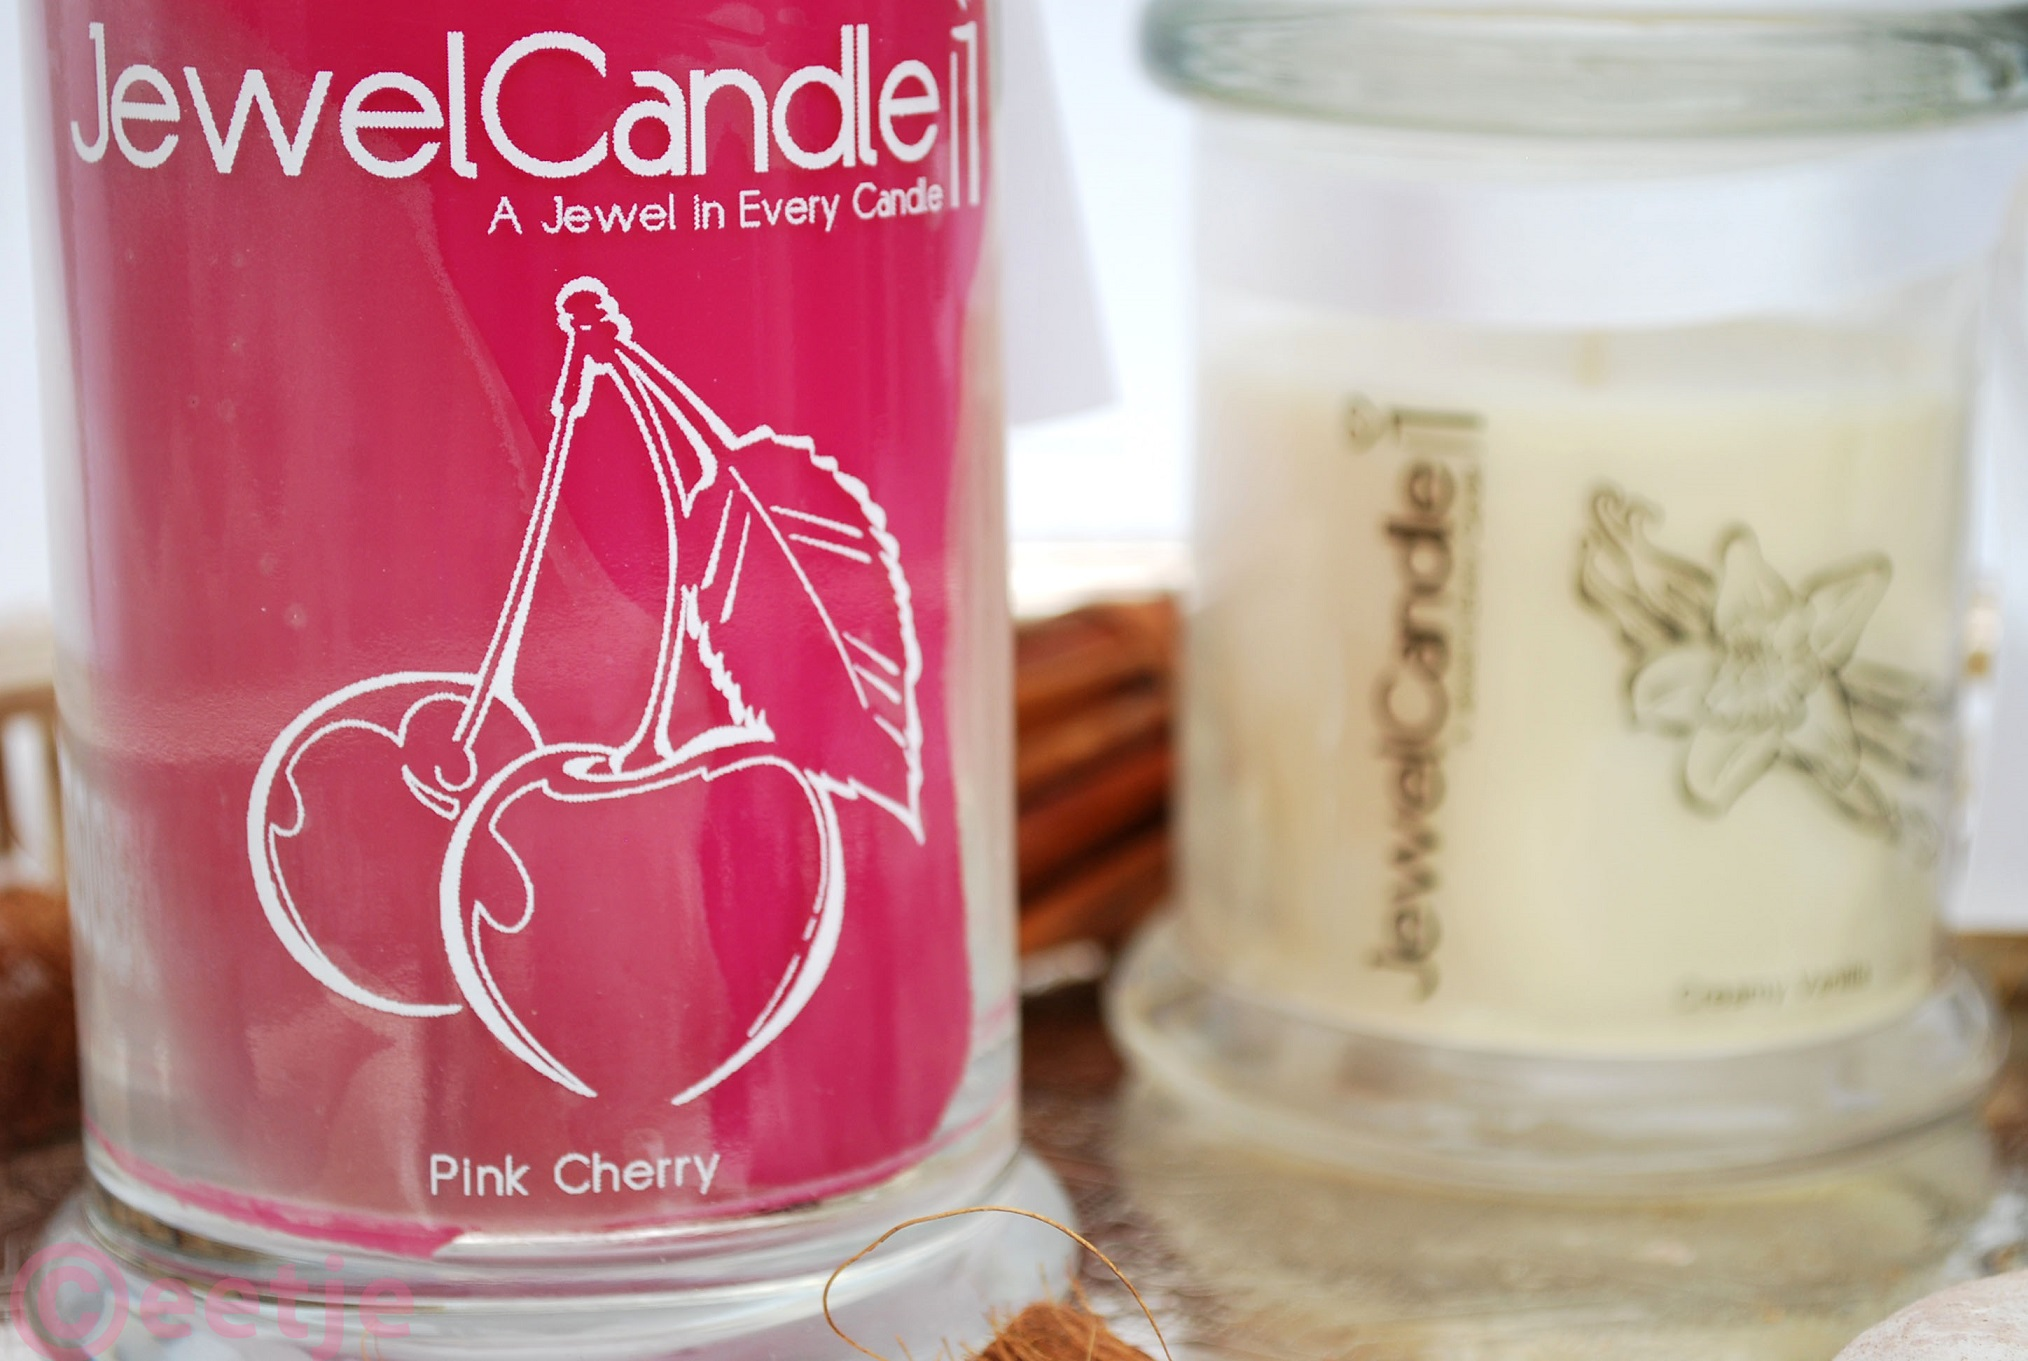 JewelCandle geurkaars met sieraad review pink cherry ring